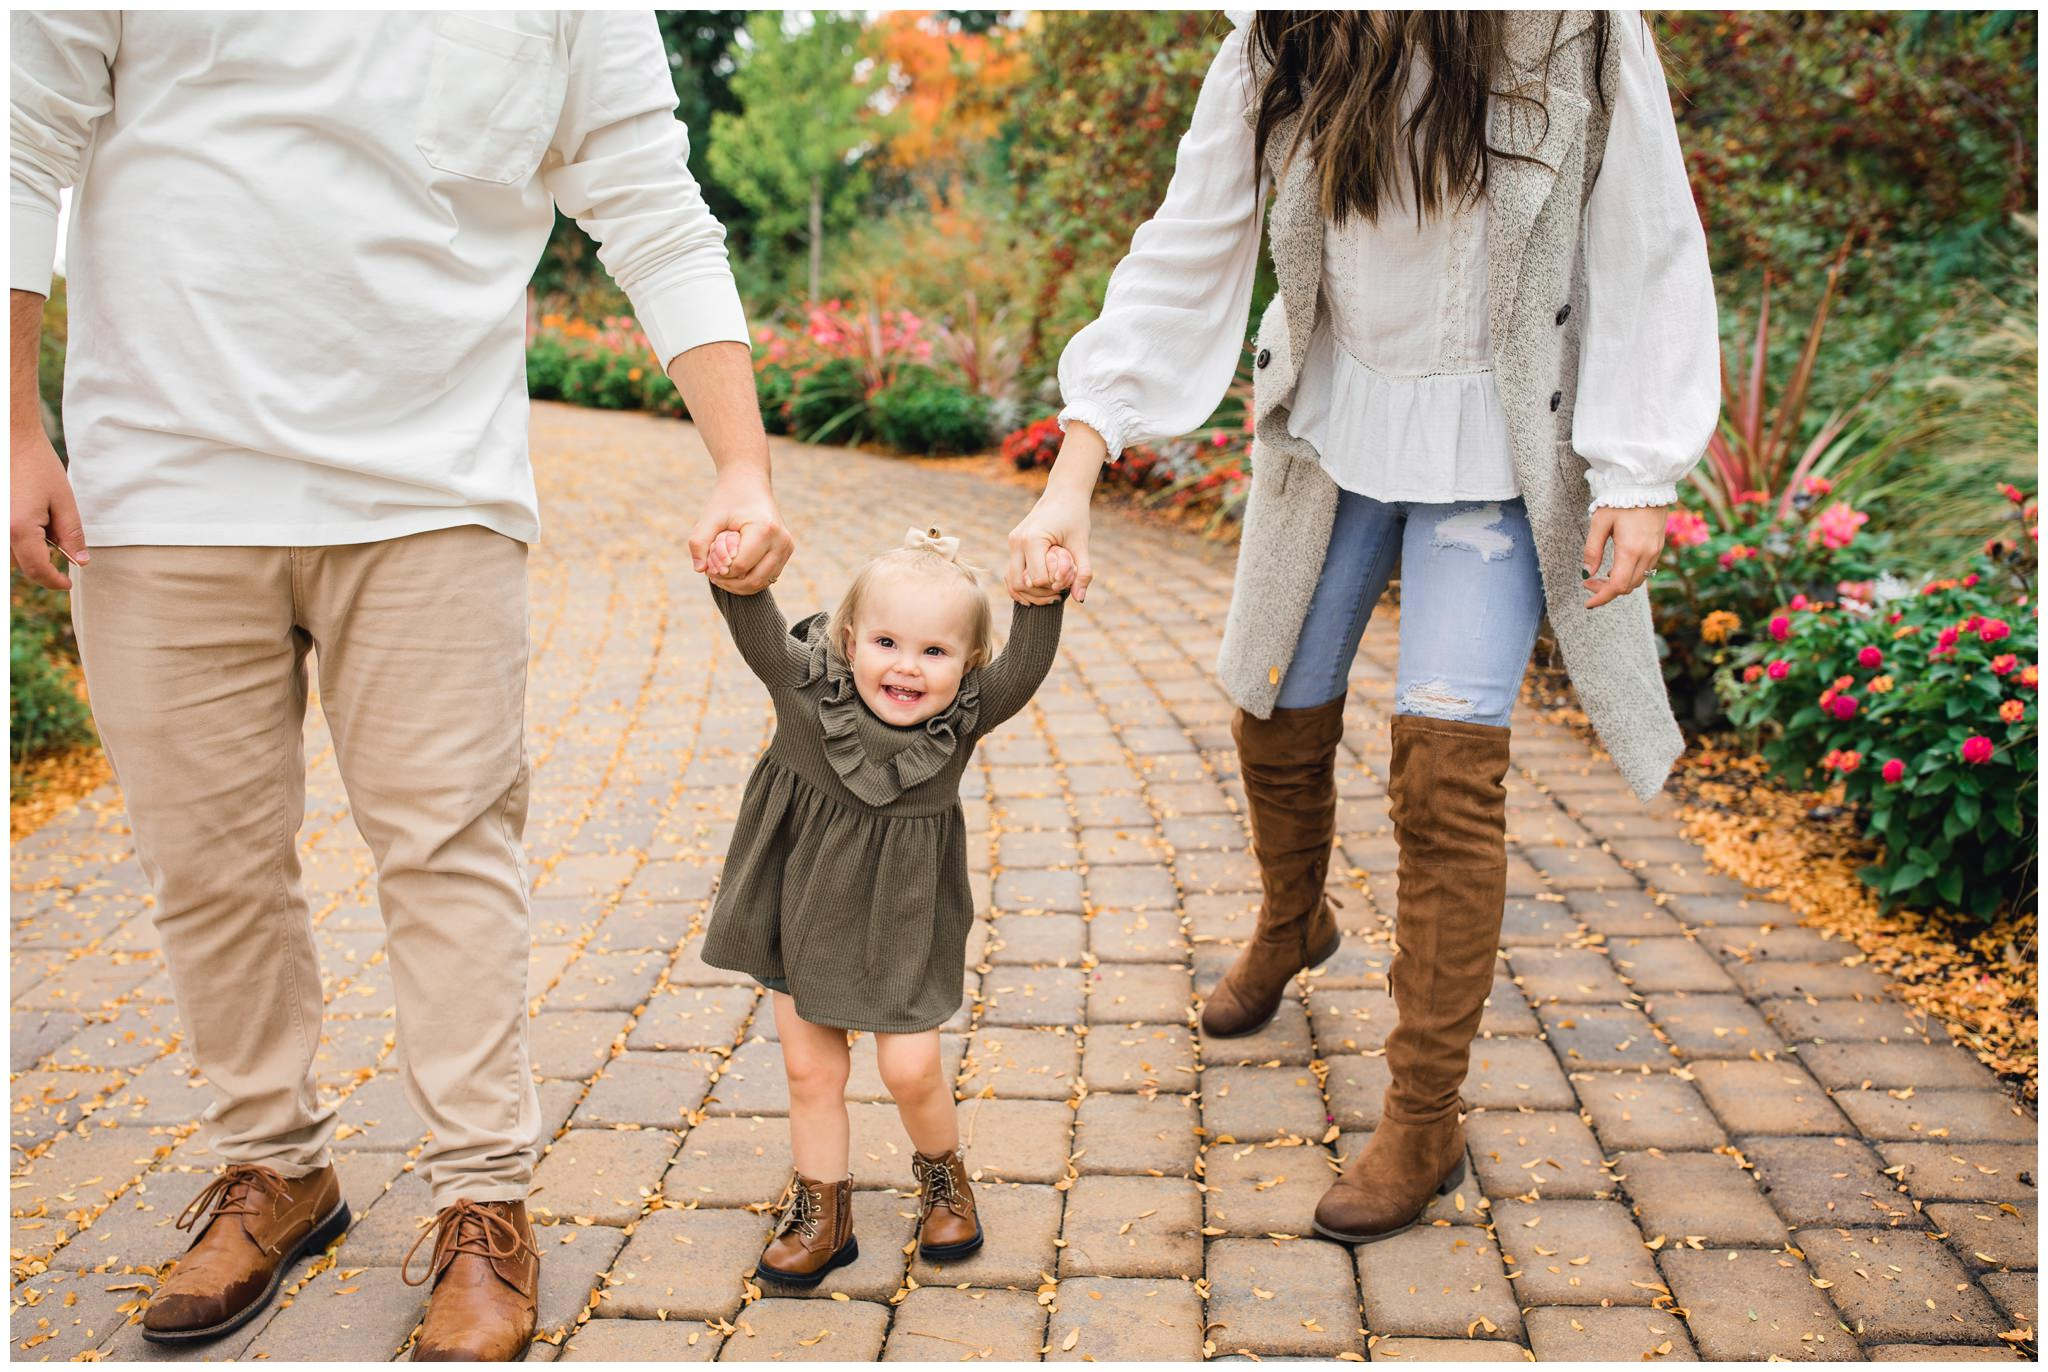 Little baby holding mom and dad's hands while walking